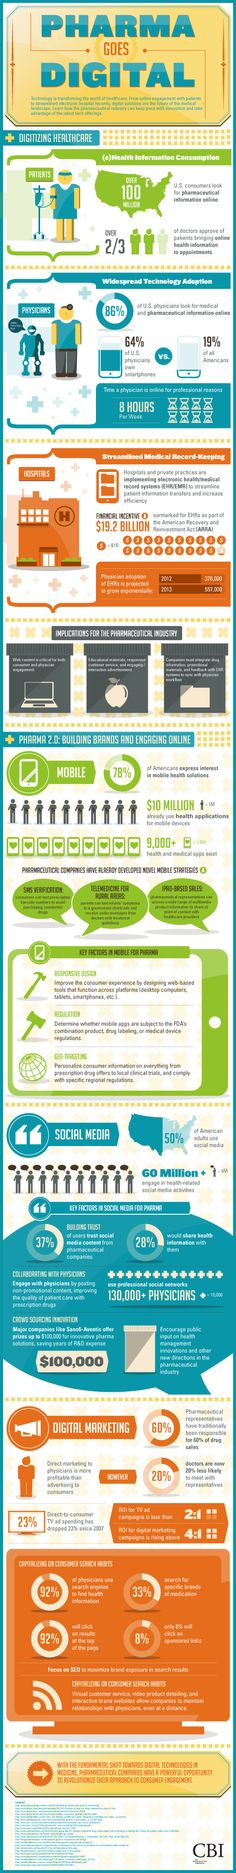 How Can Pharma Marketing Go Digital, Mobile And Social? #HCSM #infographic